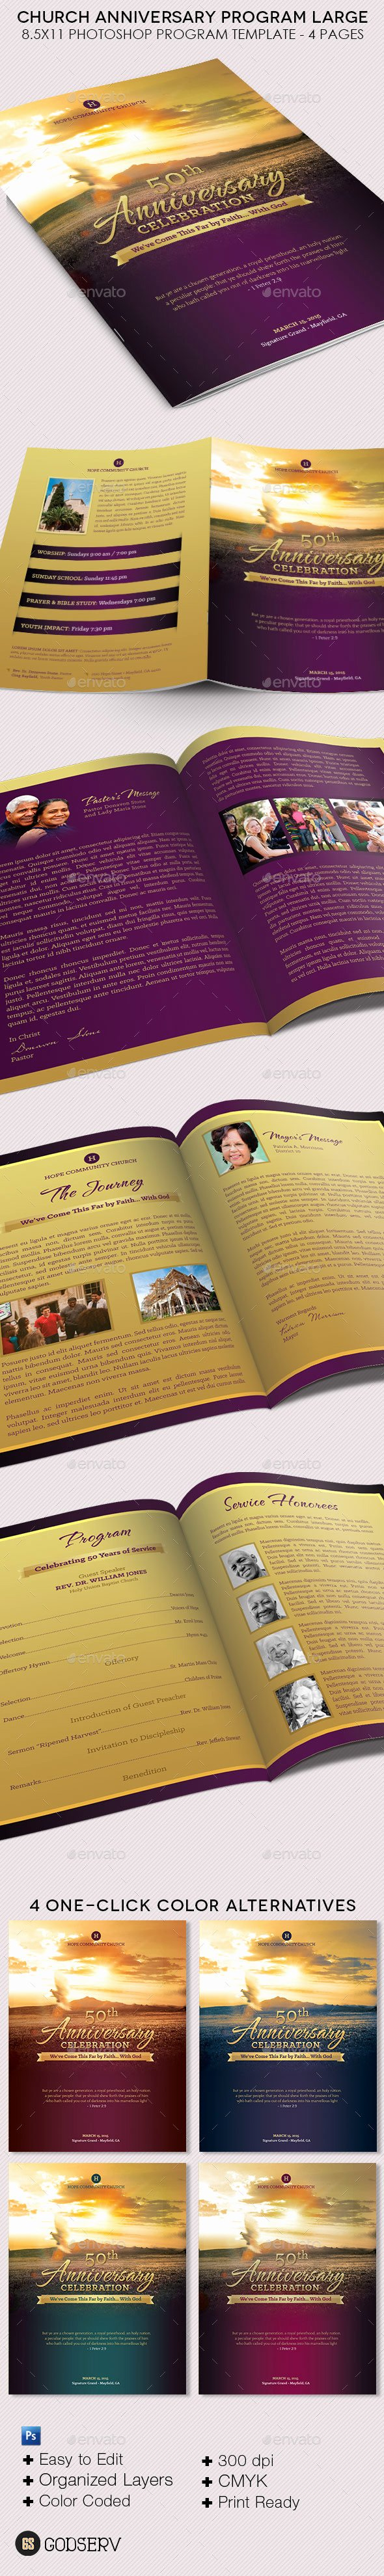 Pastor Appreciation Day Program Template Inspirational Church Anniversary Service Program Template